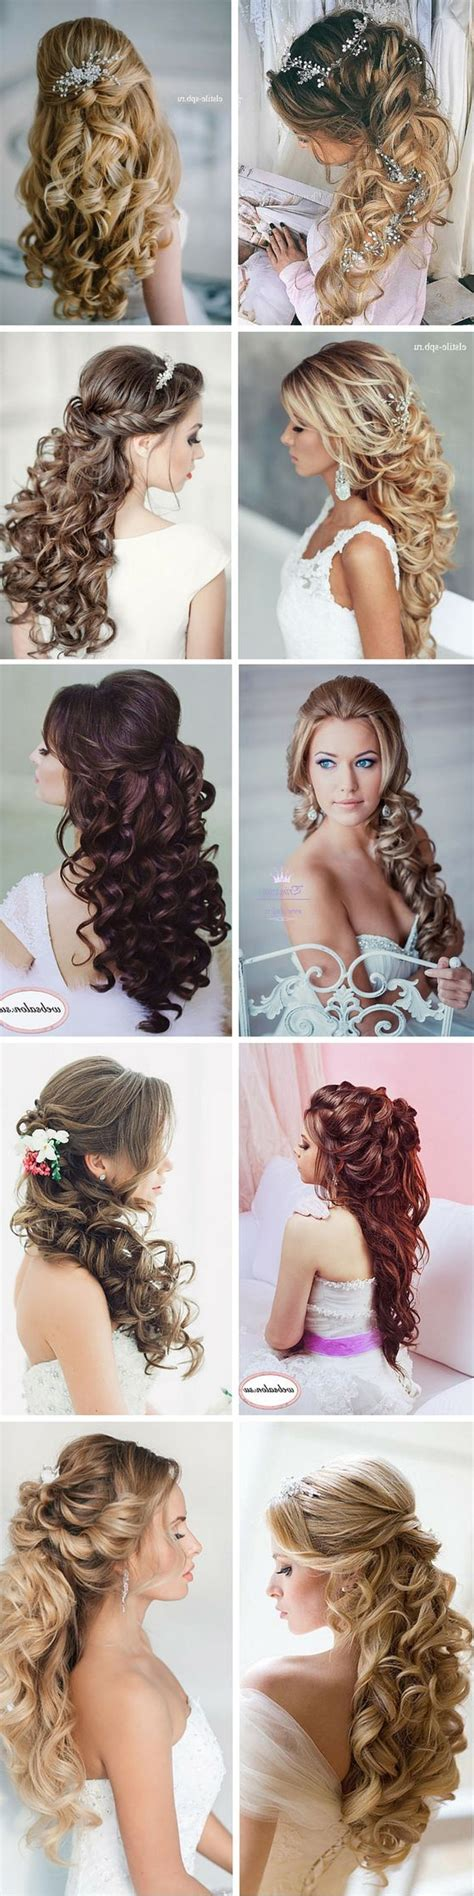 Wedding Hairstyles Curly Hair Half Up Half by 100 Wedding Hairstyles 2018 Curls Half